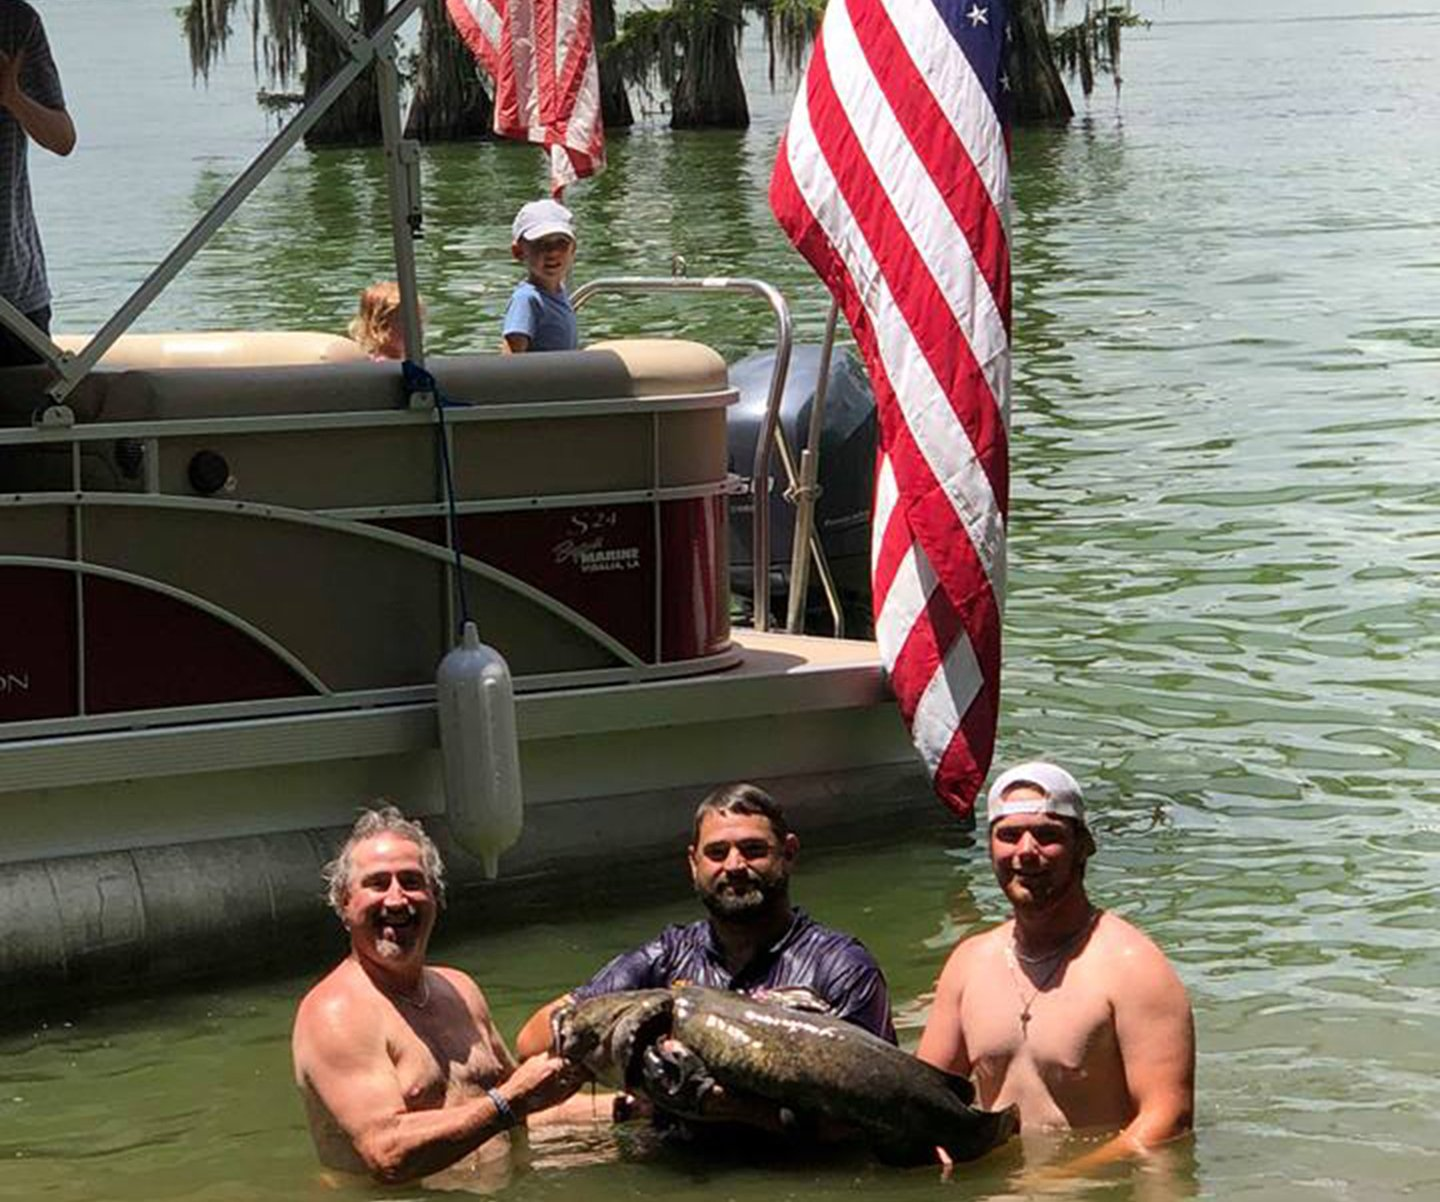 Three men holding a Catfish out of the water with a boat flying the American flag behind them